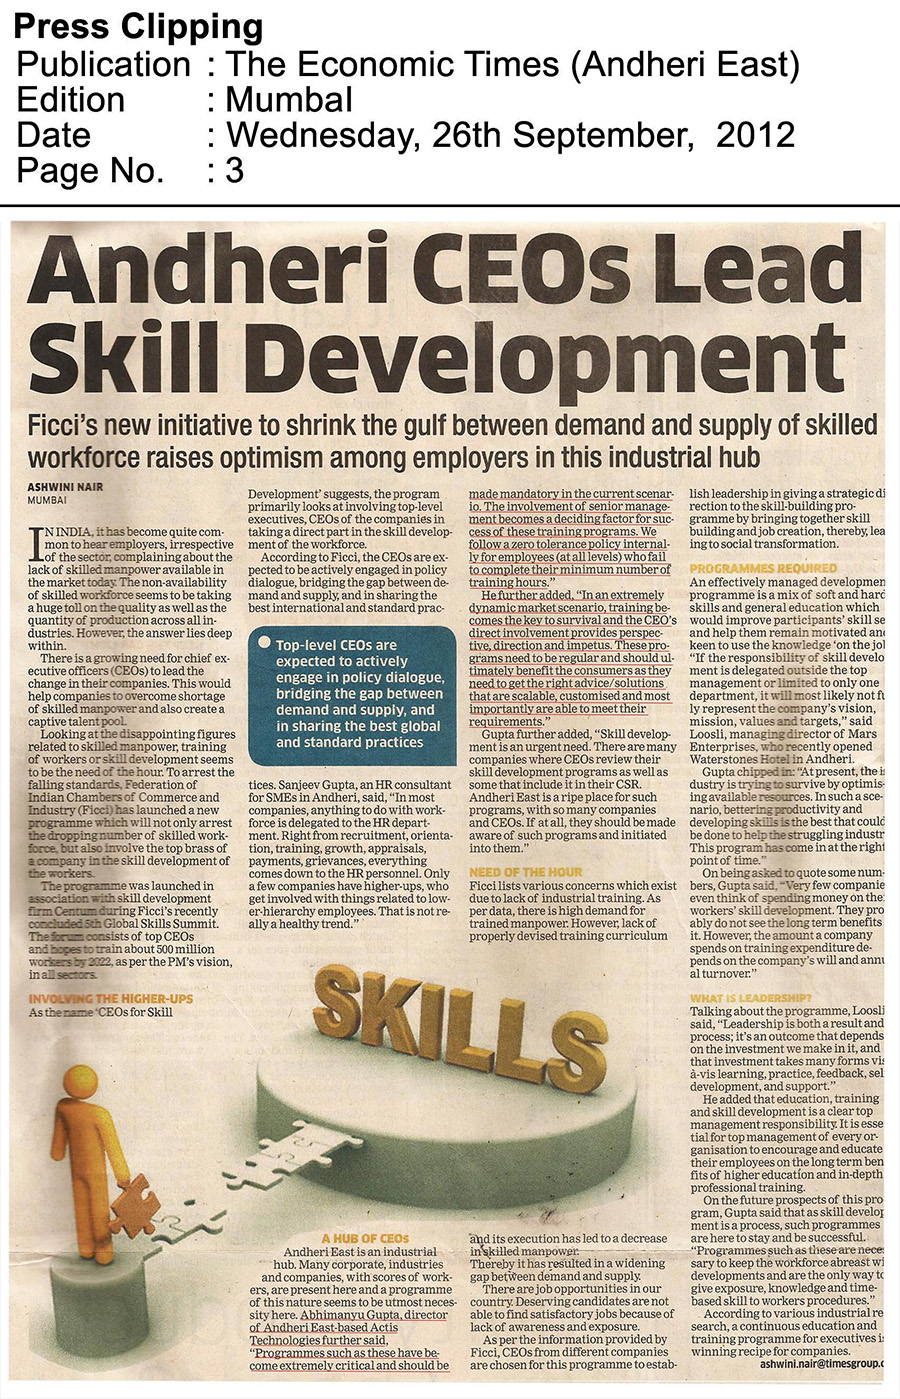 Andheri CEOs lead skill development